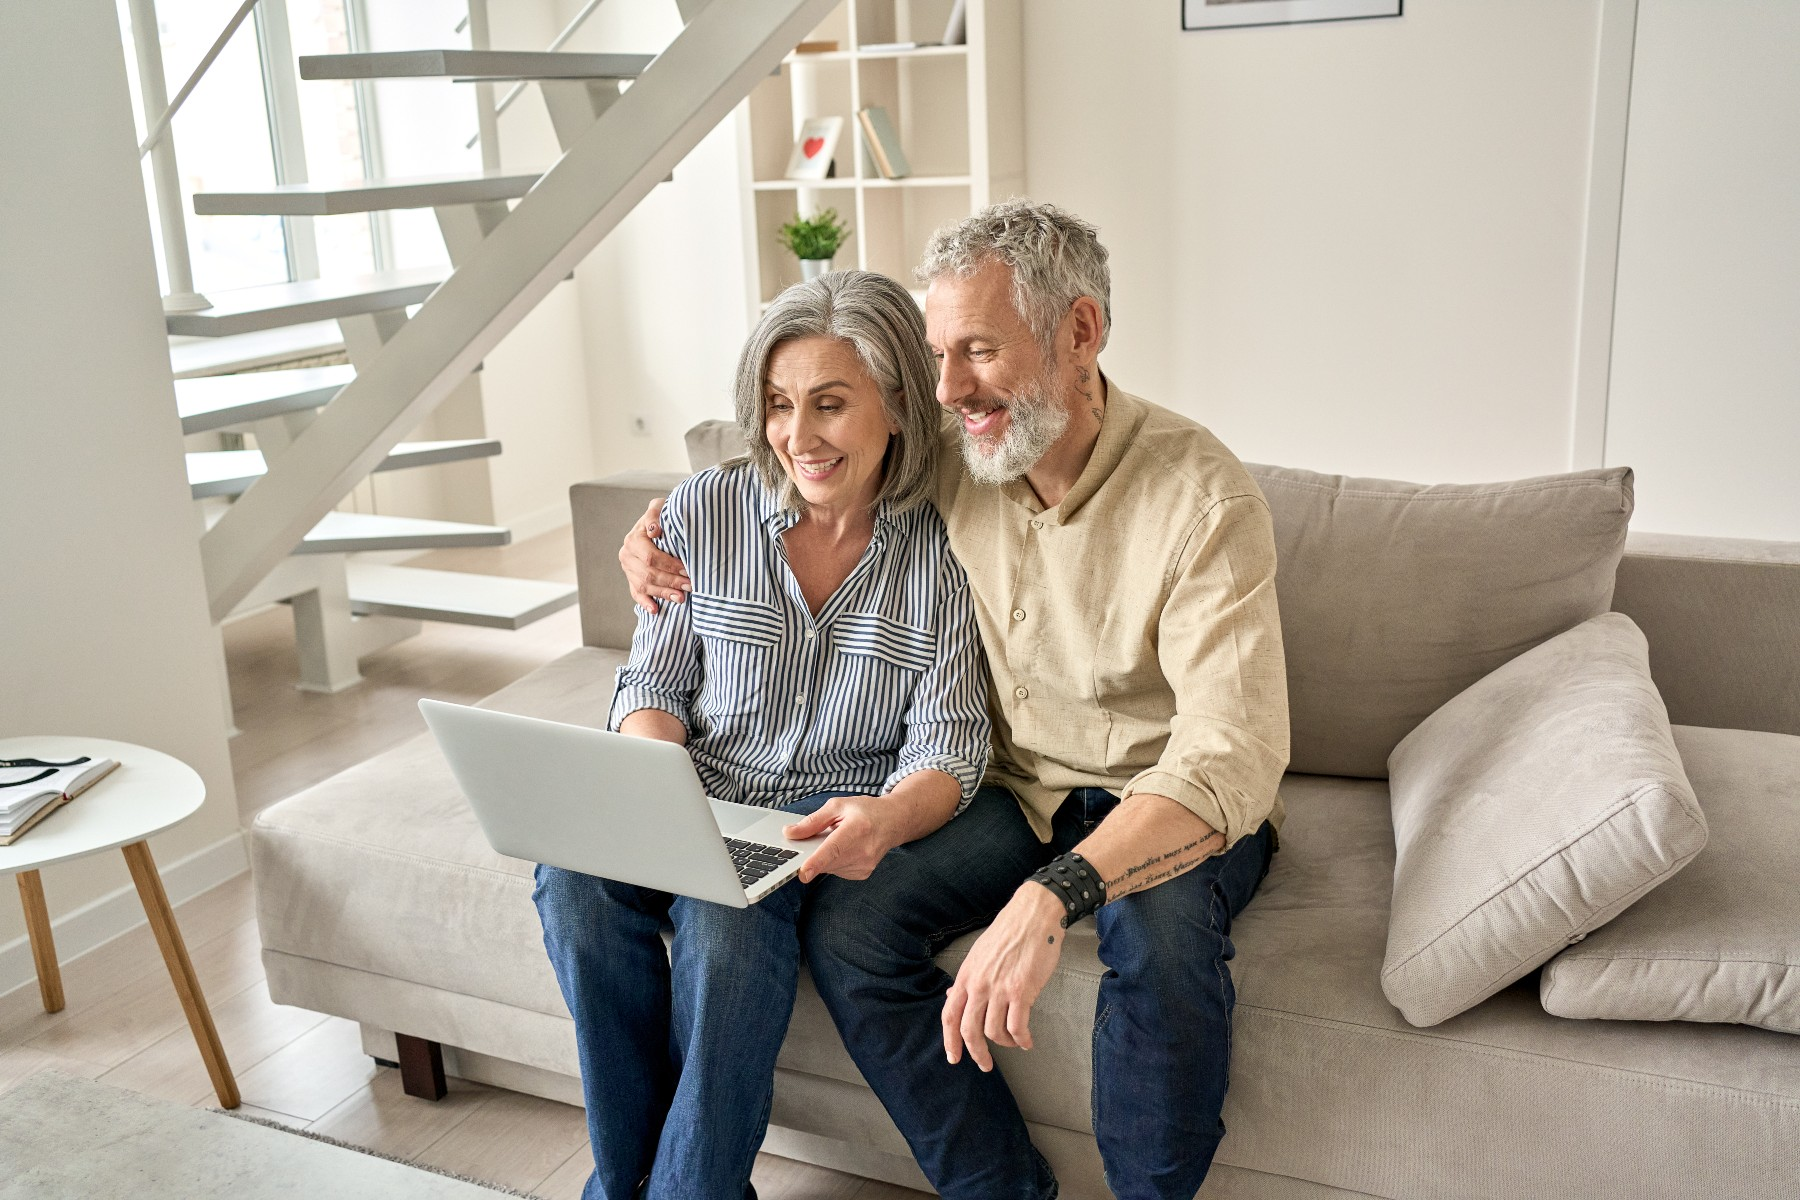 online car shopping in Switzerland, couple on couch with laptop